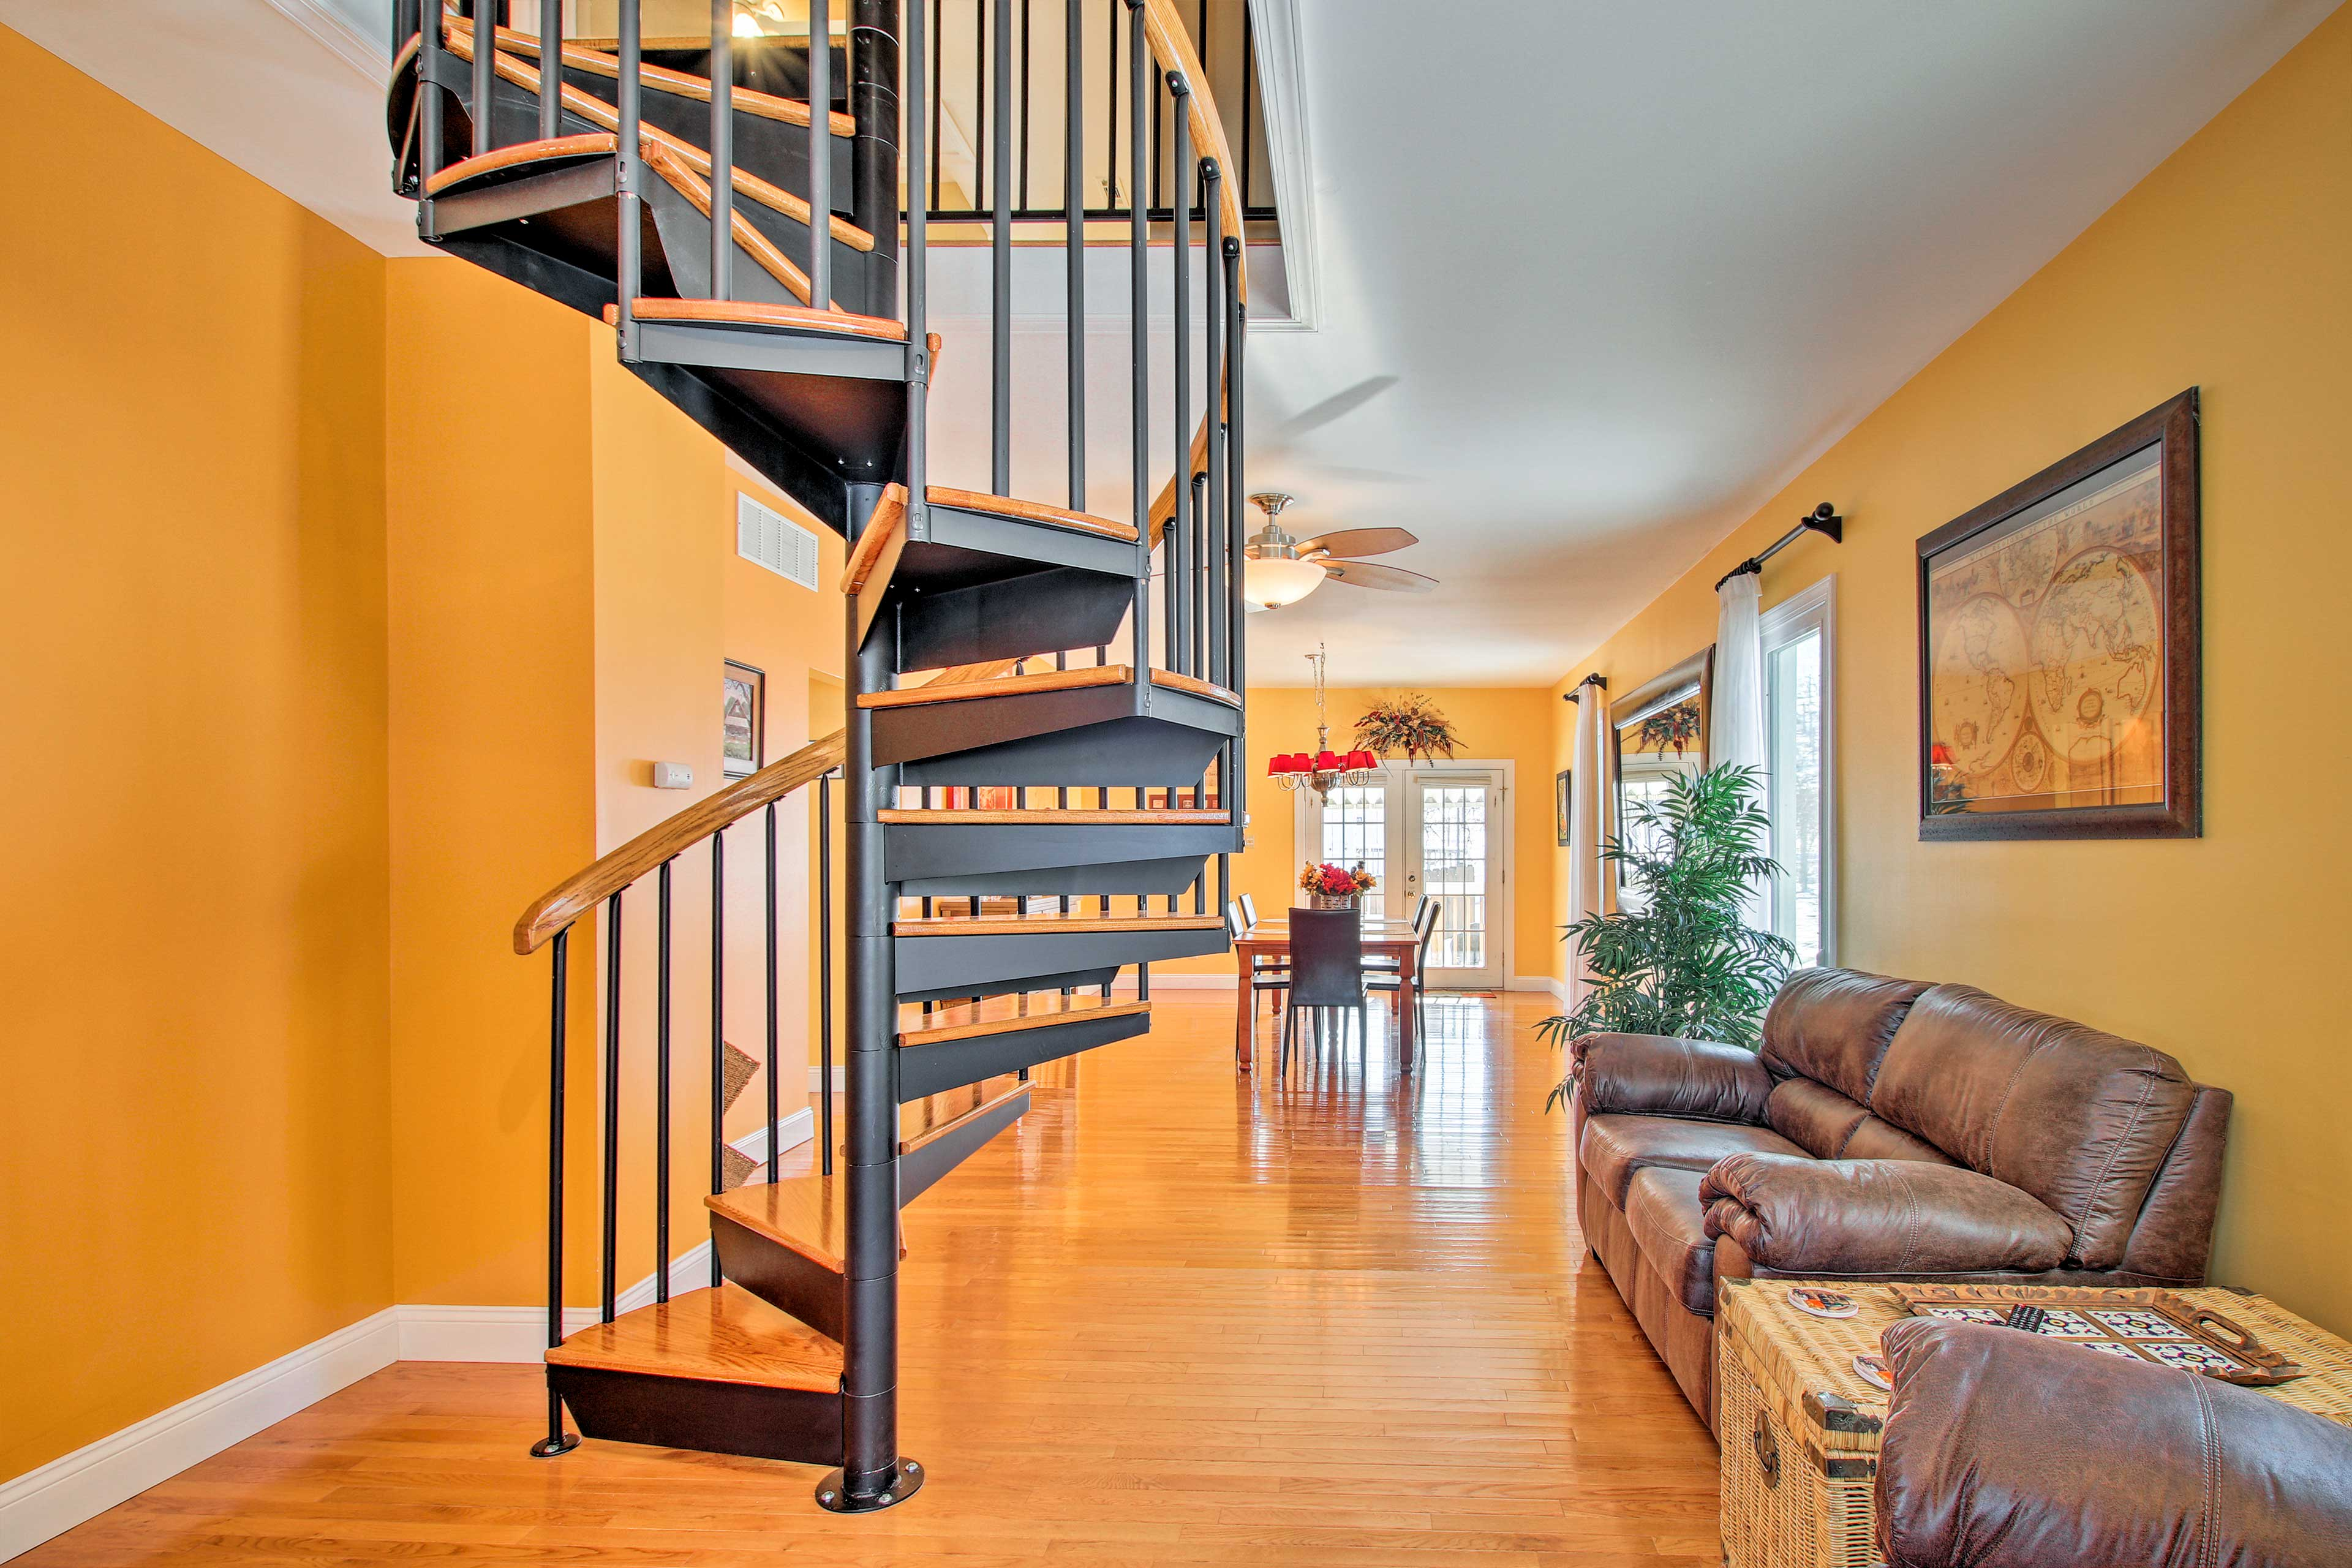 Historic touches add charm to the house - like this fun spiral staircase!